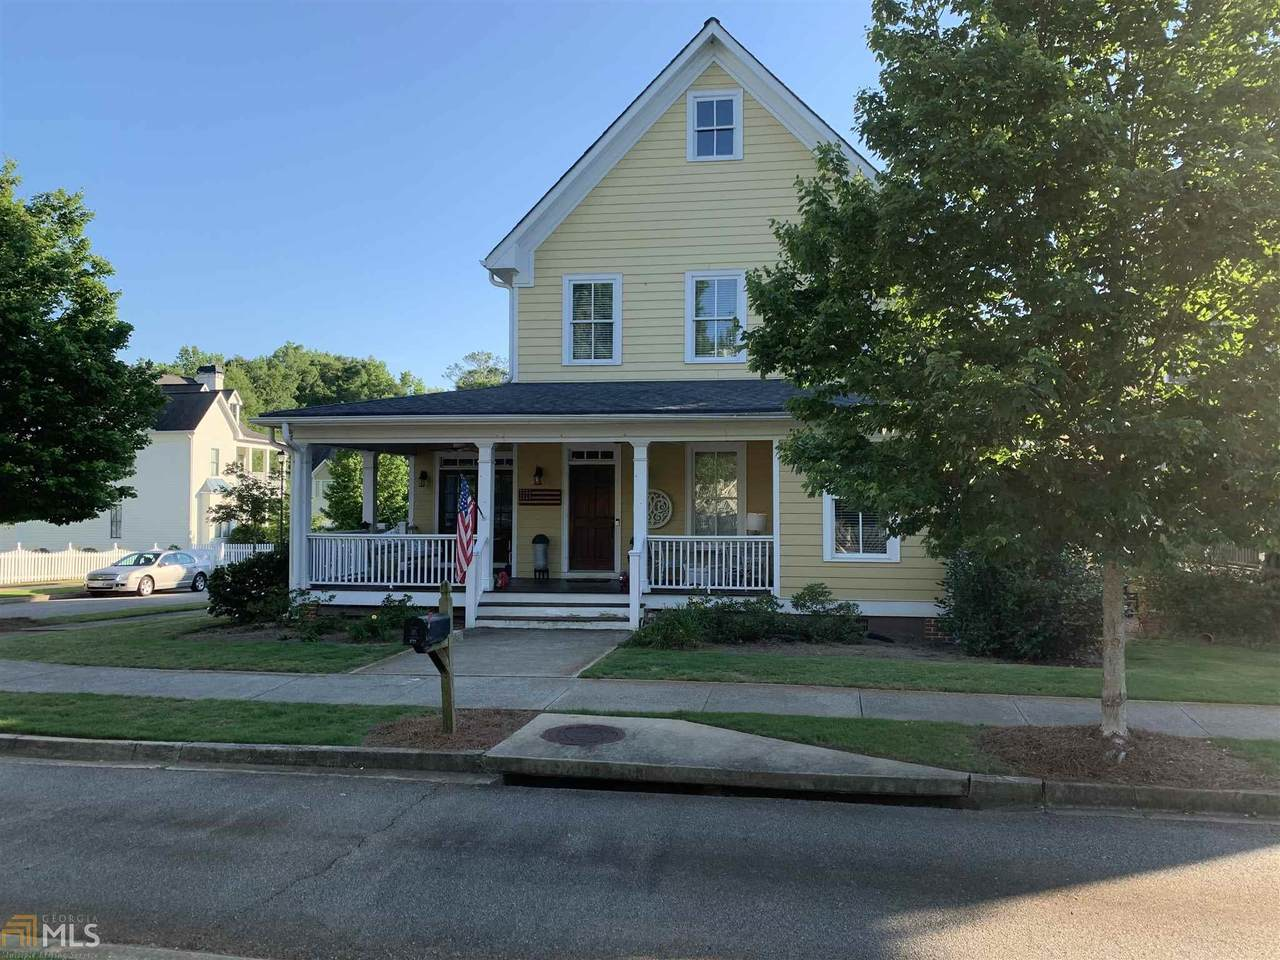 577 Sycamore St - Photo 1